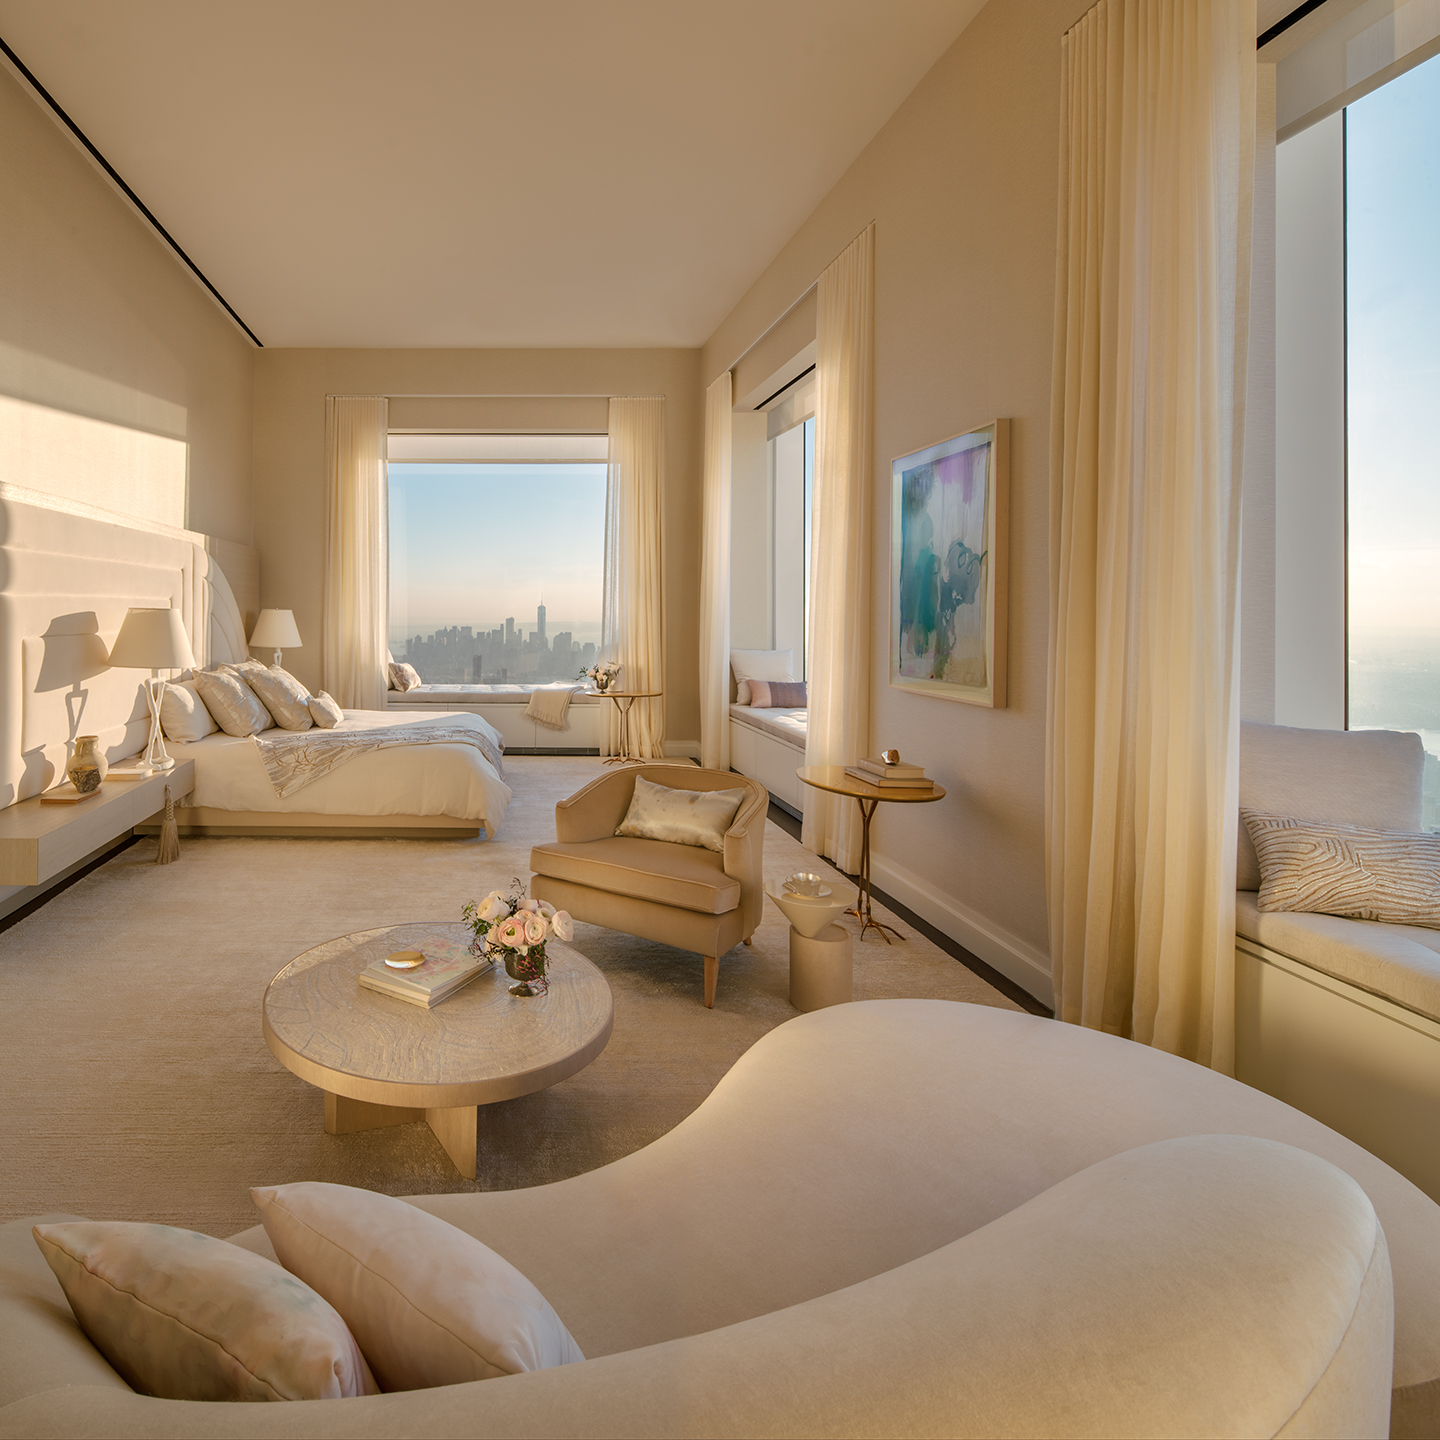 1 Br Apartments Nyc: Peek Inside 432 Park Avenue's $40M, 92nd-floor Penthouse